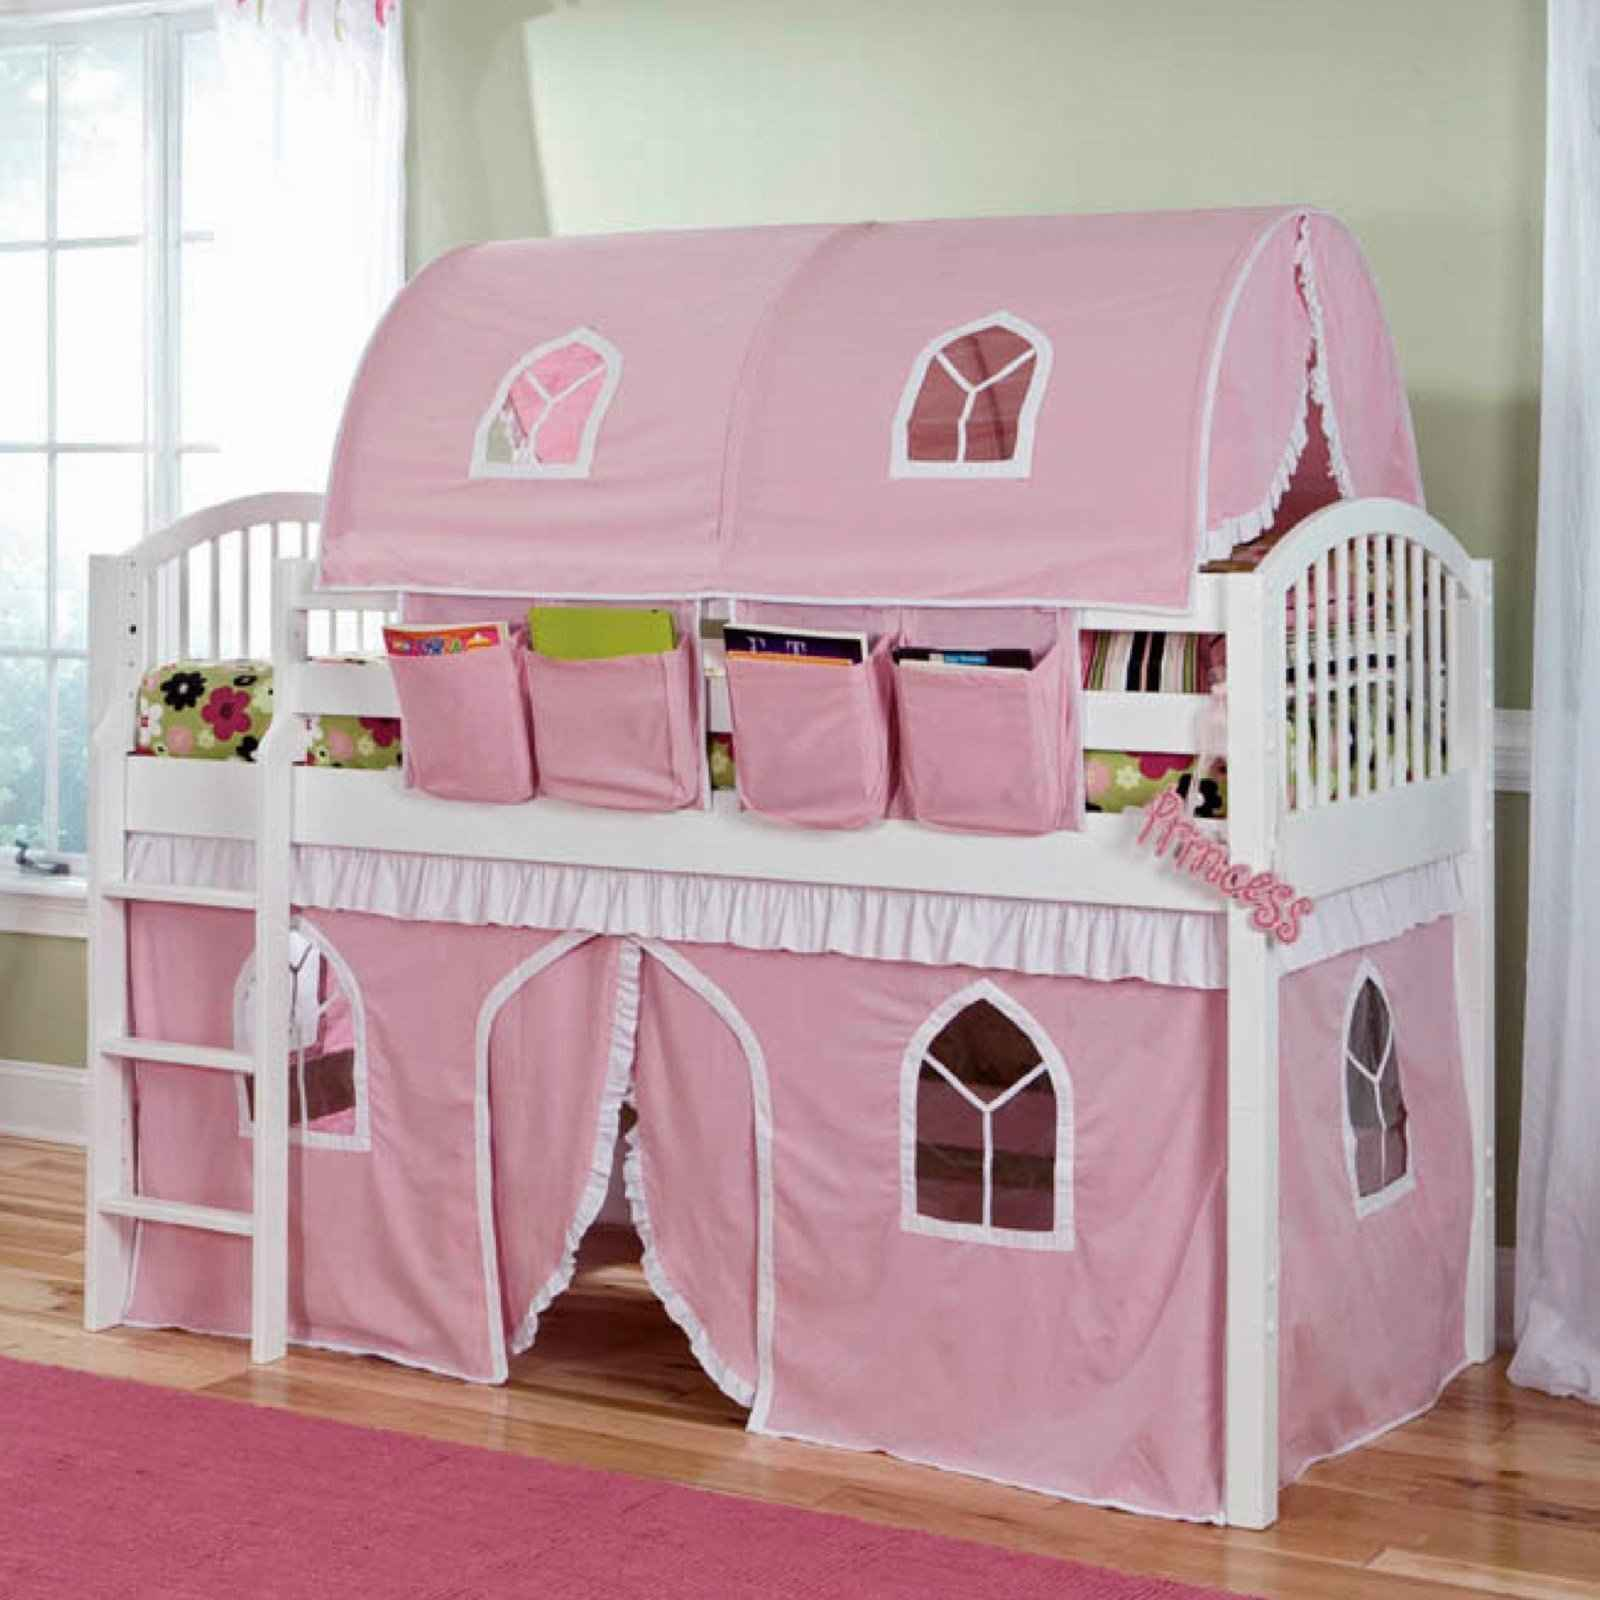 Castle Beds For Girls Loft Plans | Feel The Home